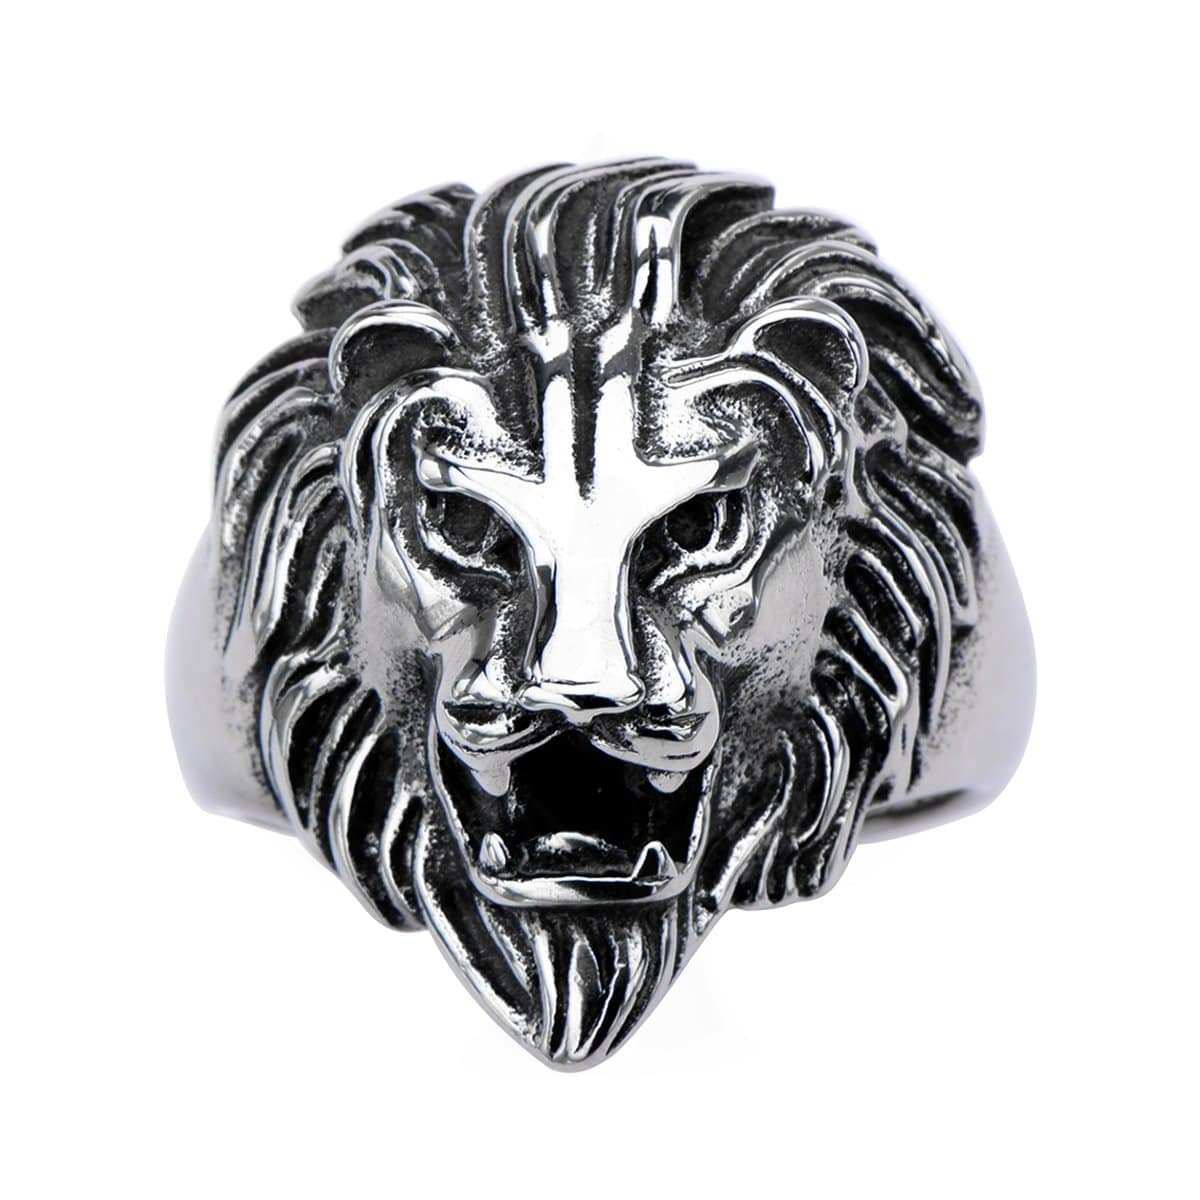 Darkened Silver Stainless Steel Roaring Lion Ring Rings